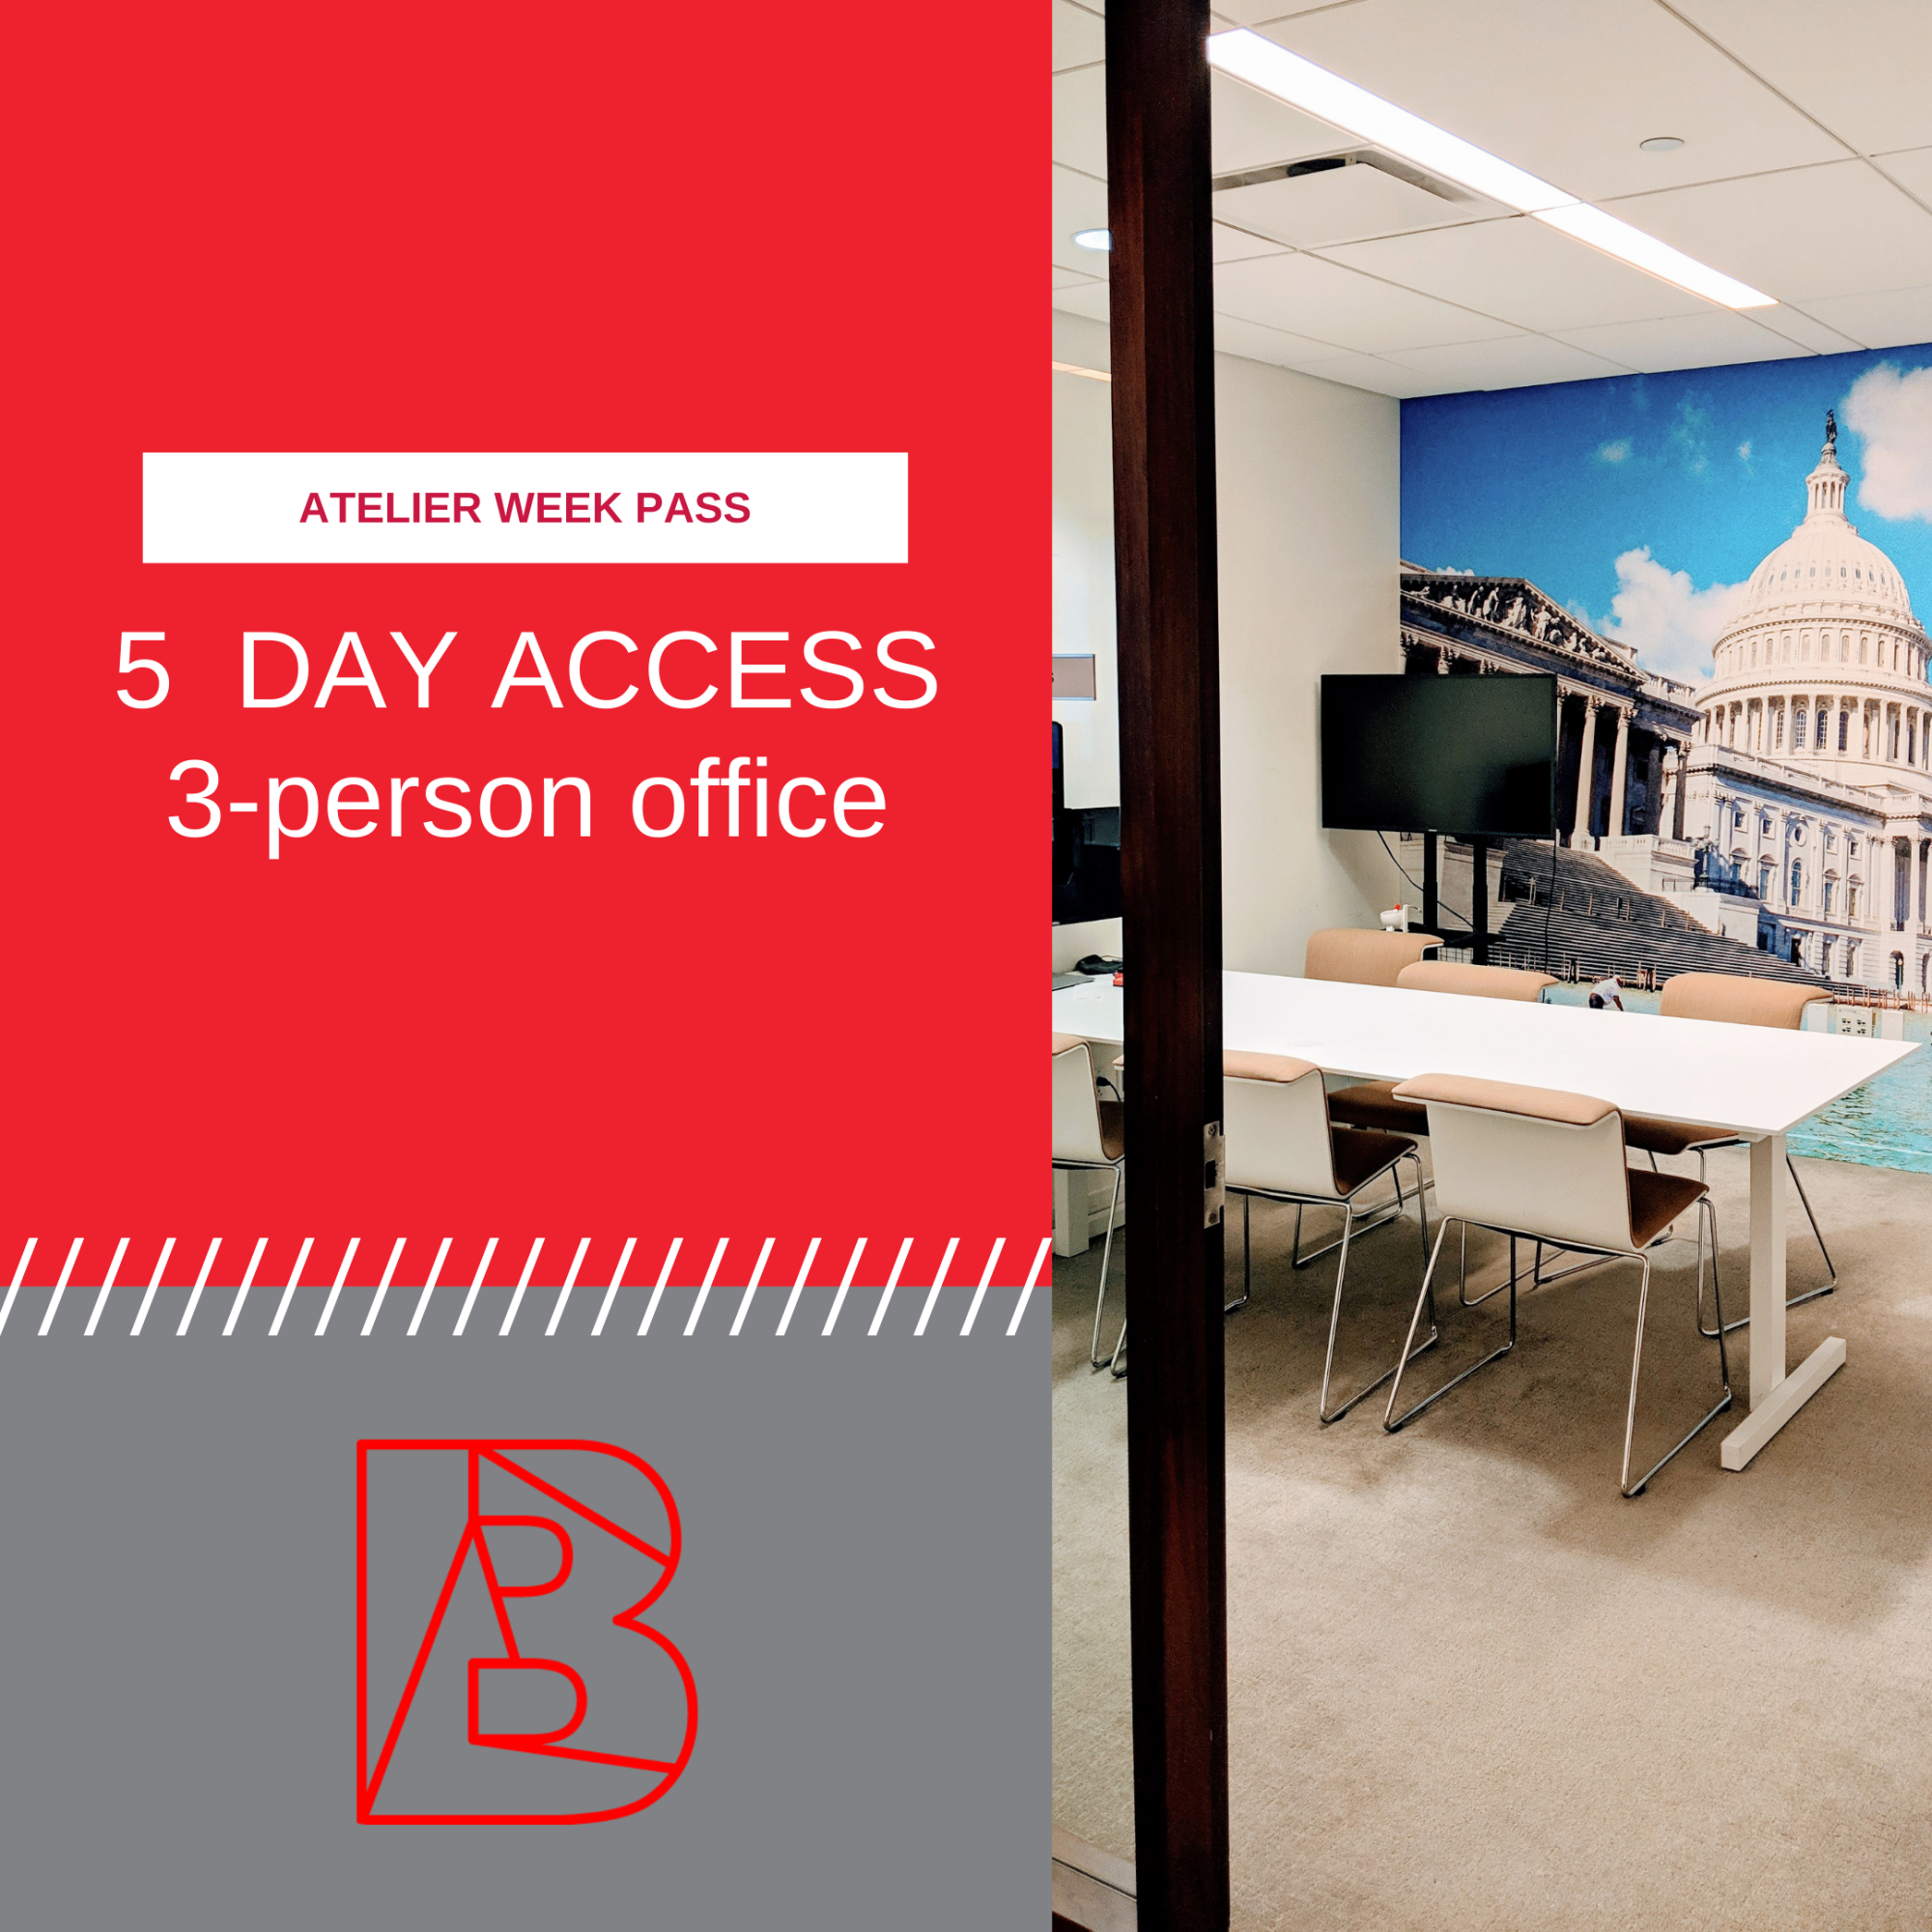 week pass for 3-person office